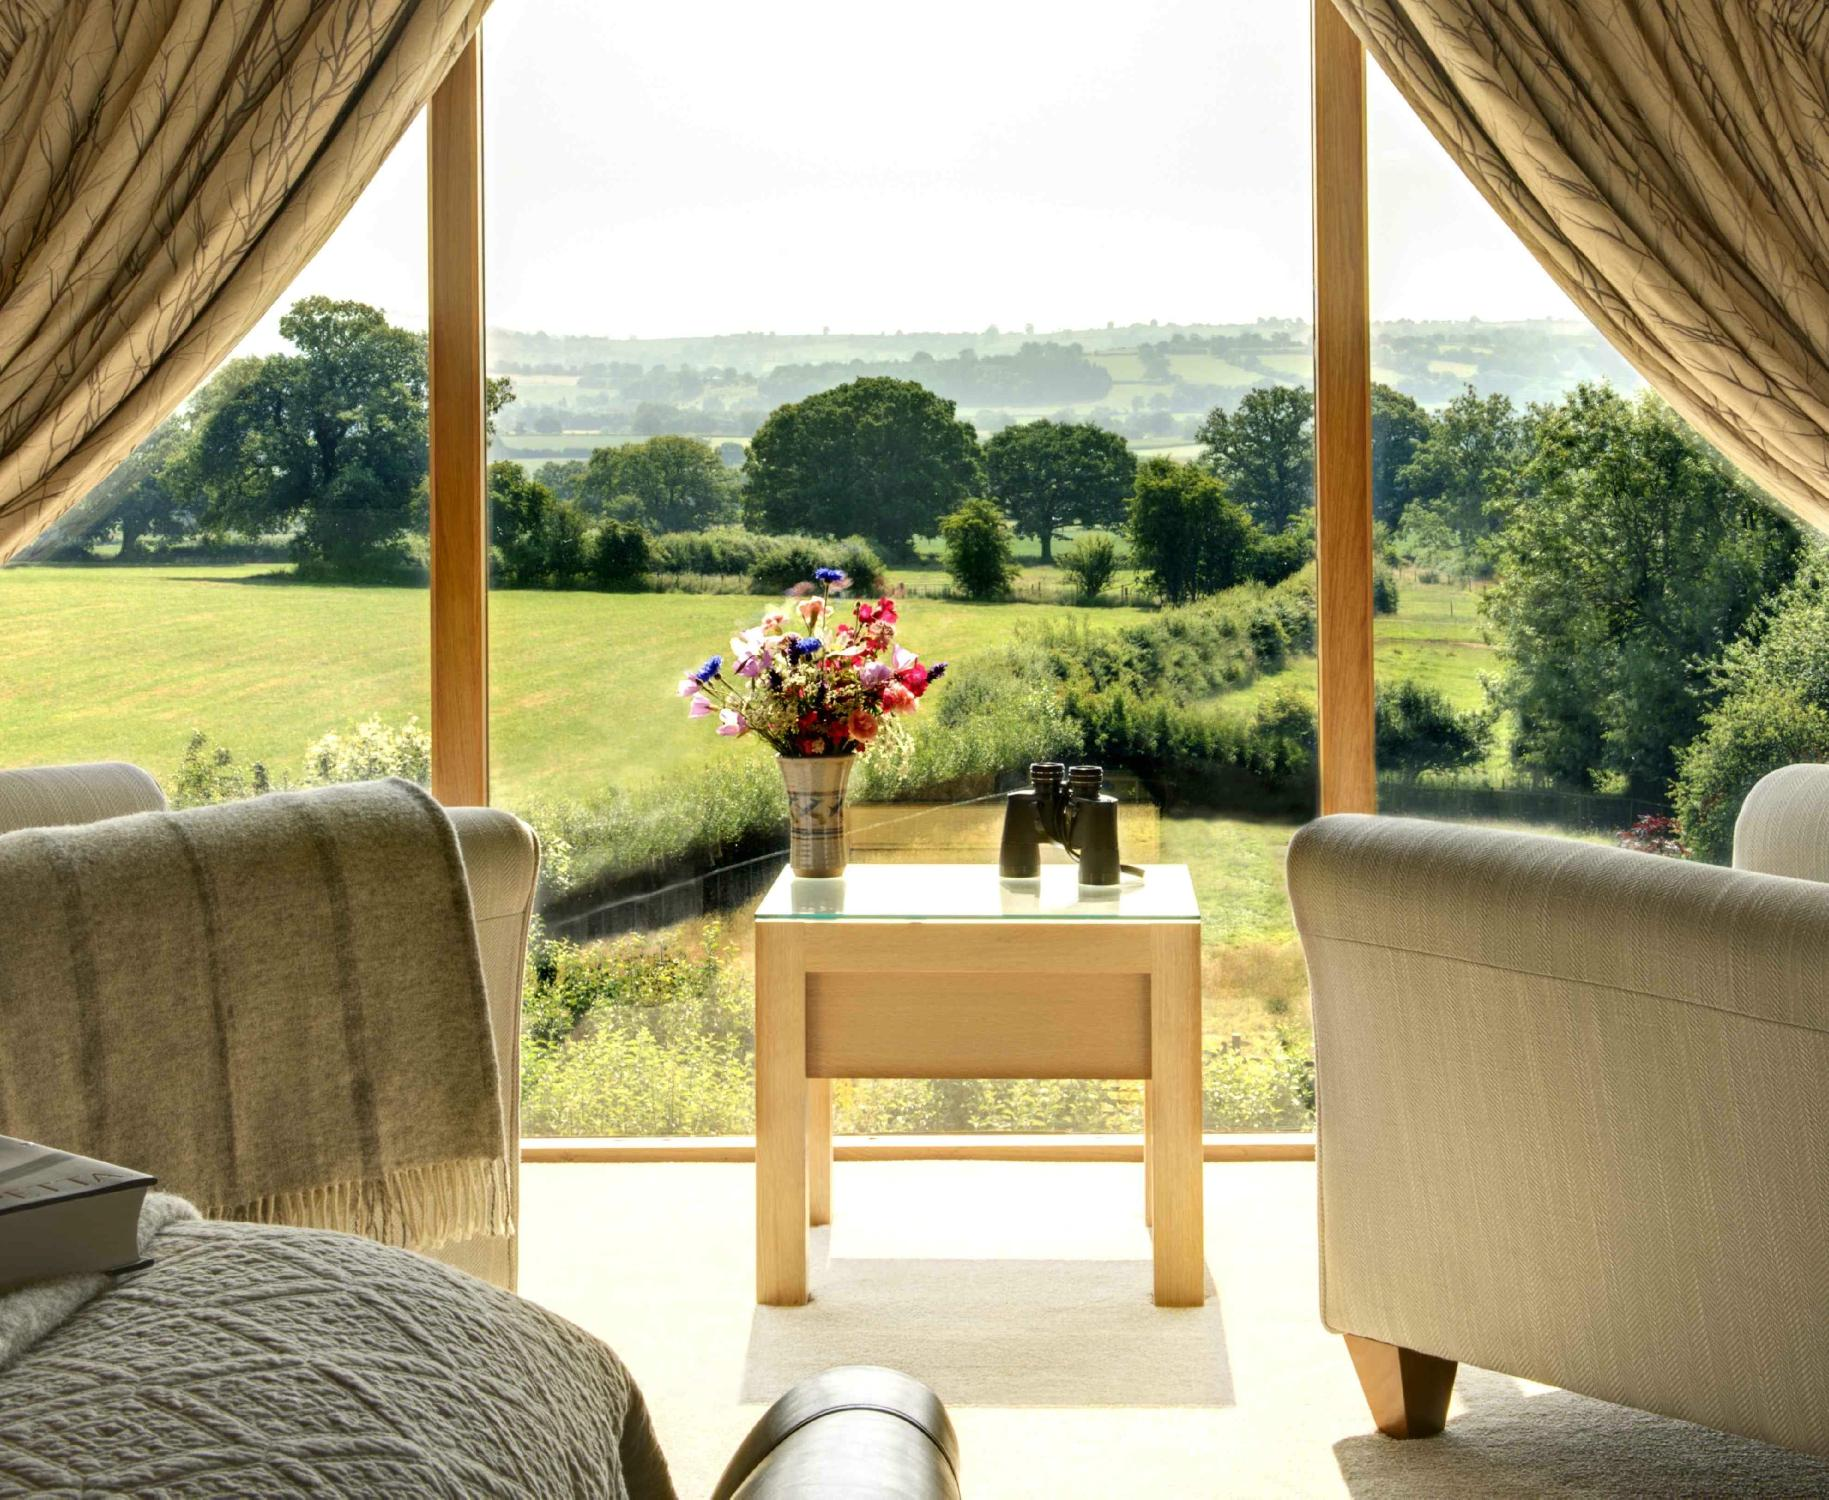 Shropshire Hills Bed and Breakfast